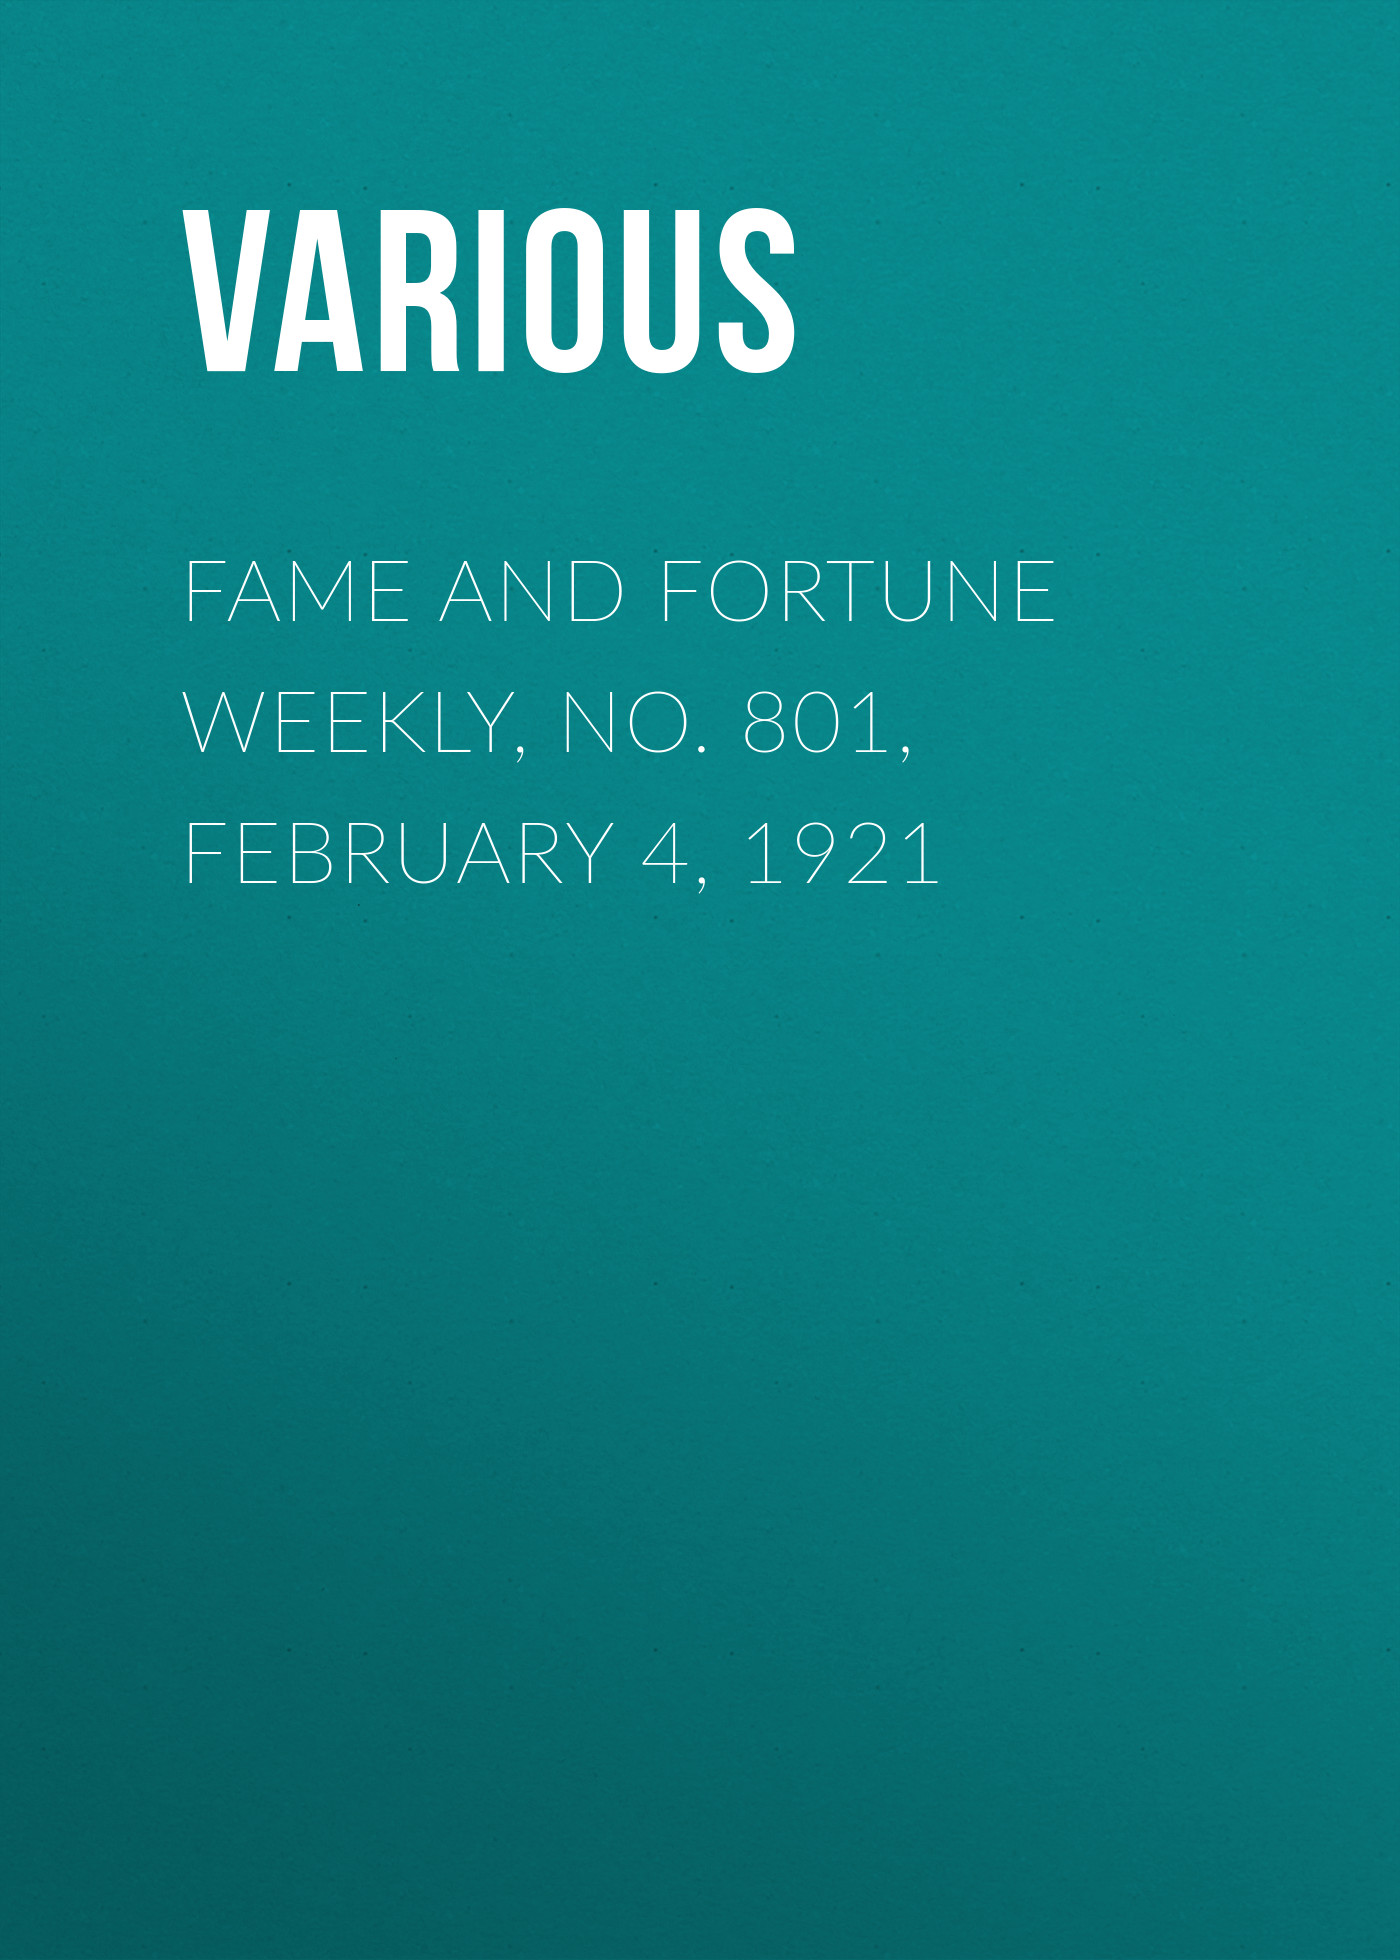 Various Fame and Fortune Weekly, No. 801, February 4, 1921 fromthenon 365 notebooks and journals faux leather cover personal daily monthly weekly planner kawaii stationery school supplies